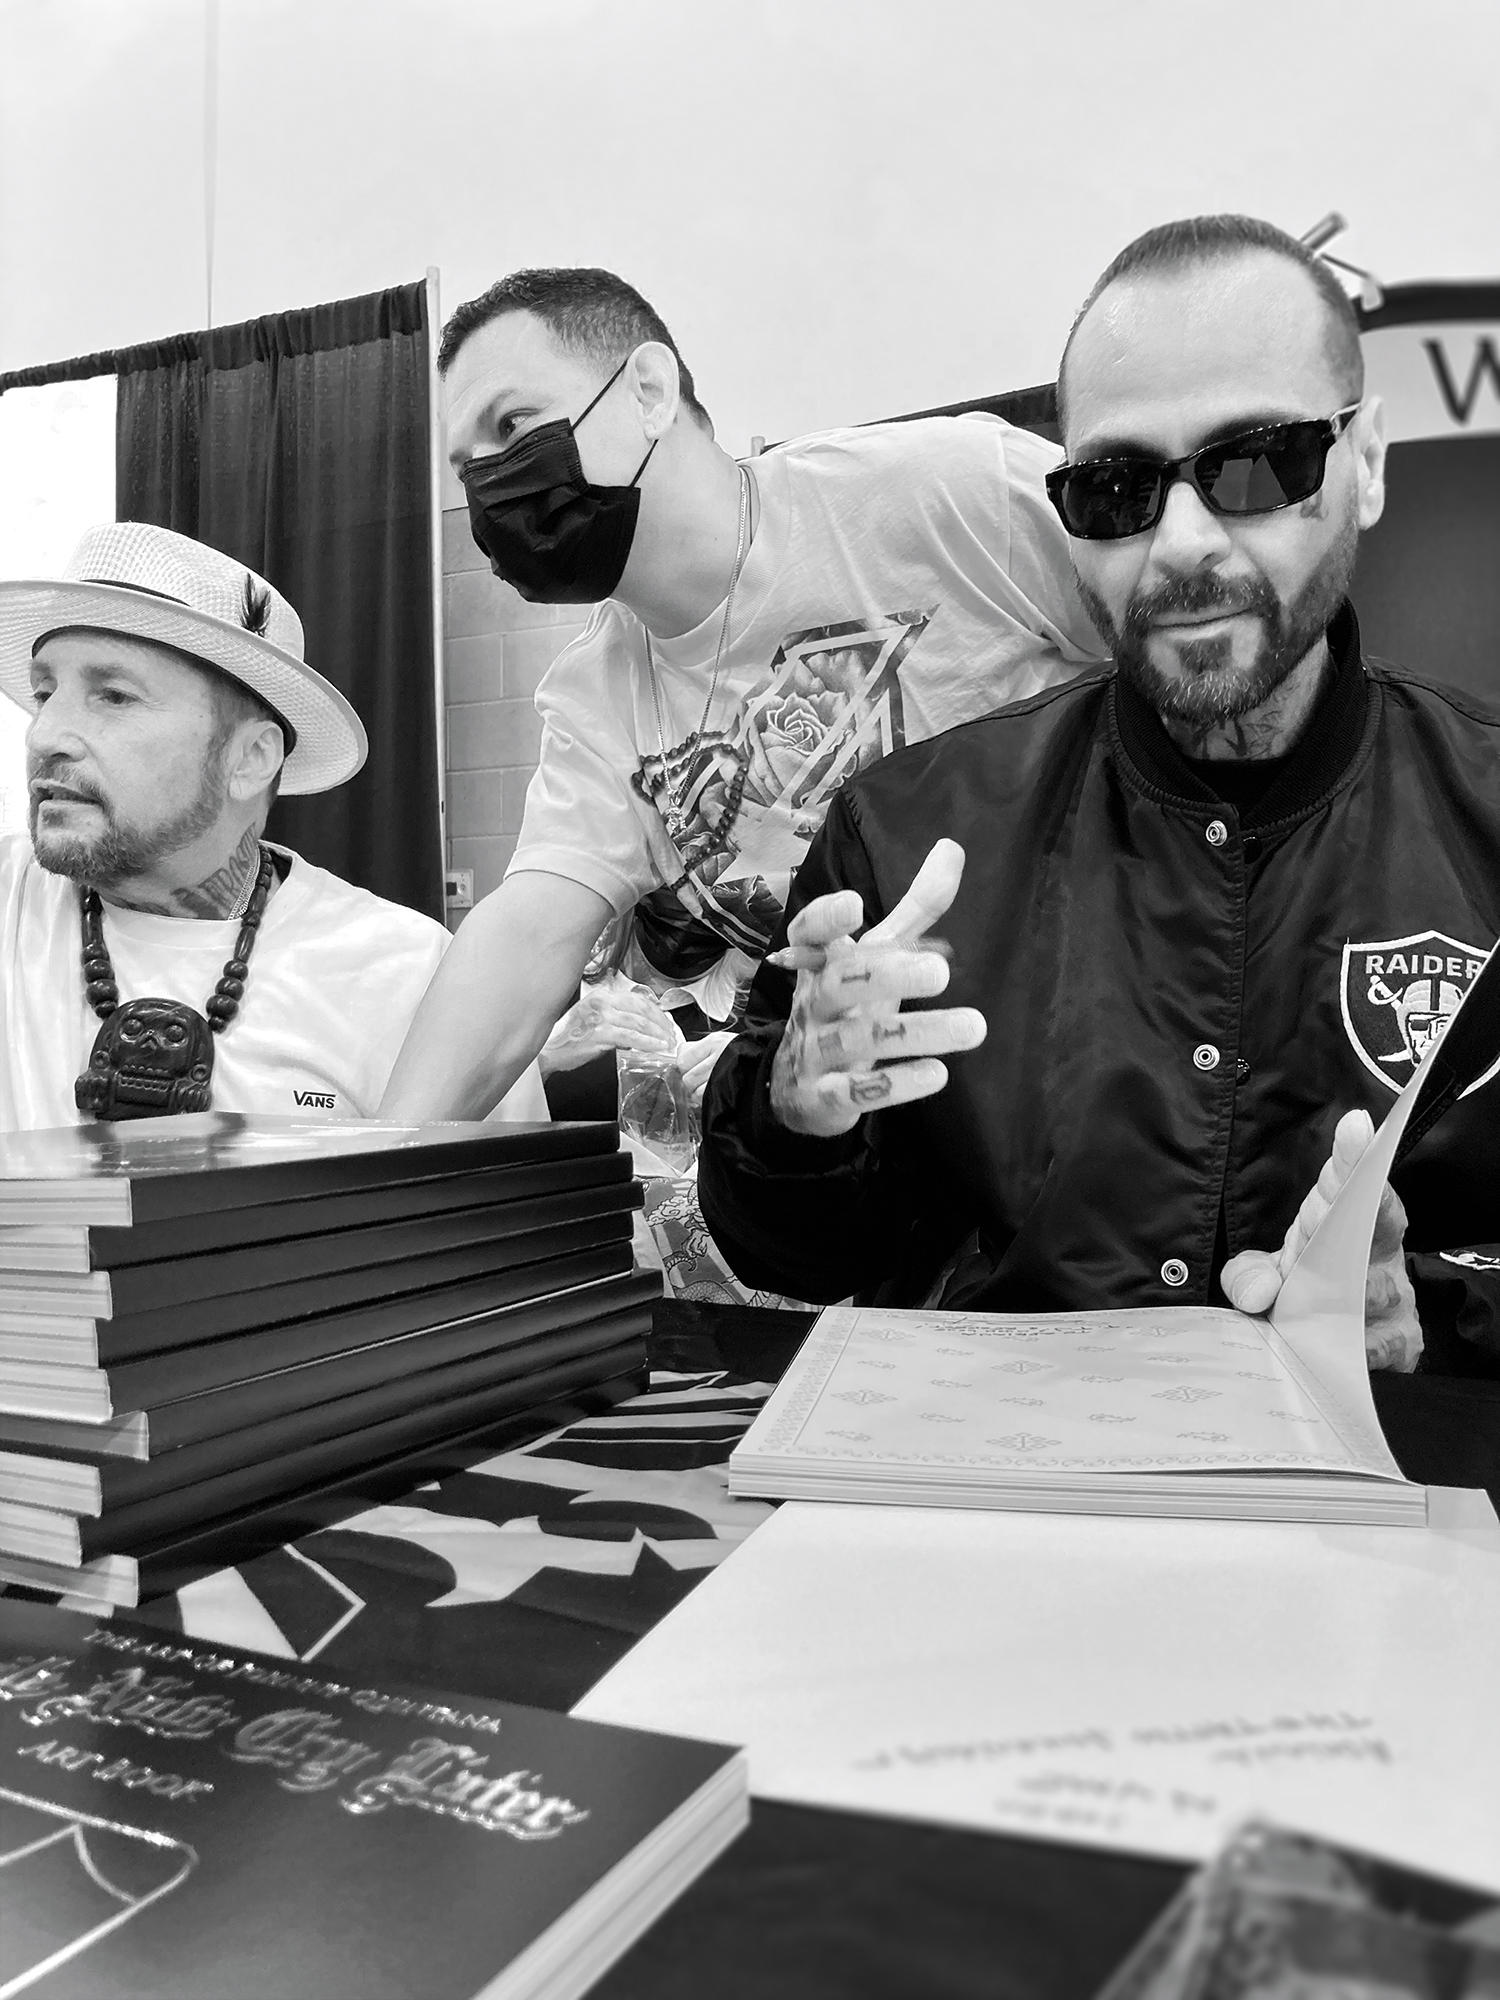 Freddy Negrete, Chuey Quintanar, and Johnny Quintana, from left to right.